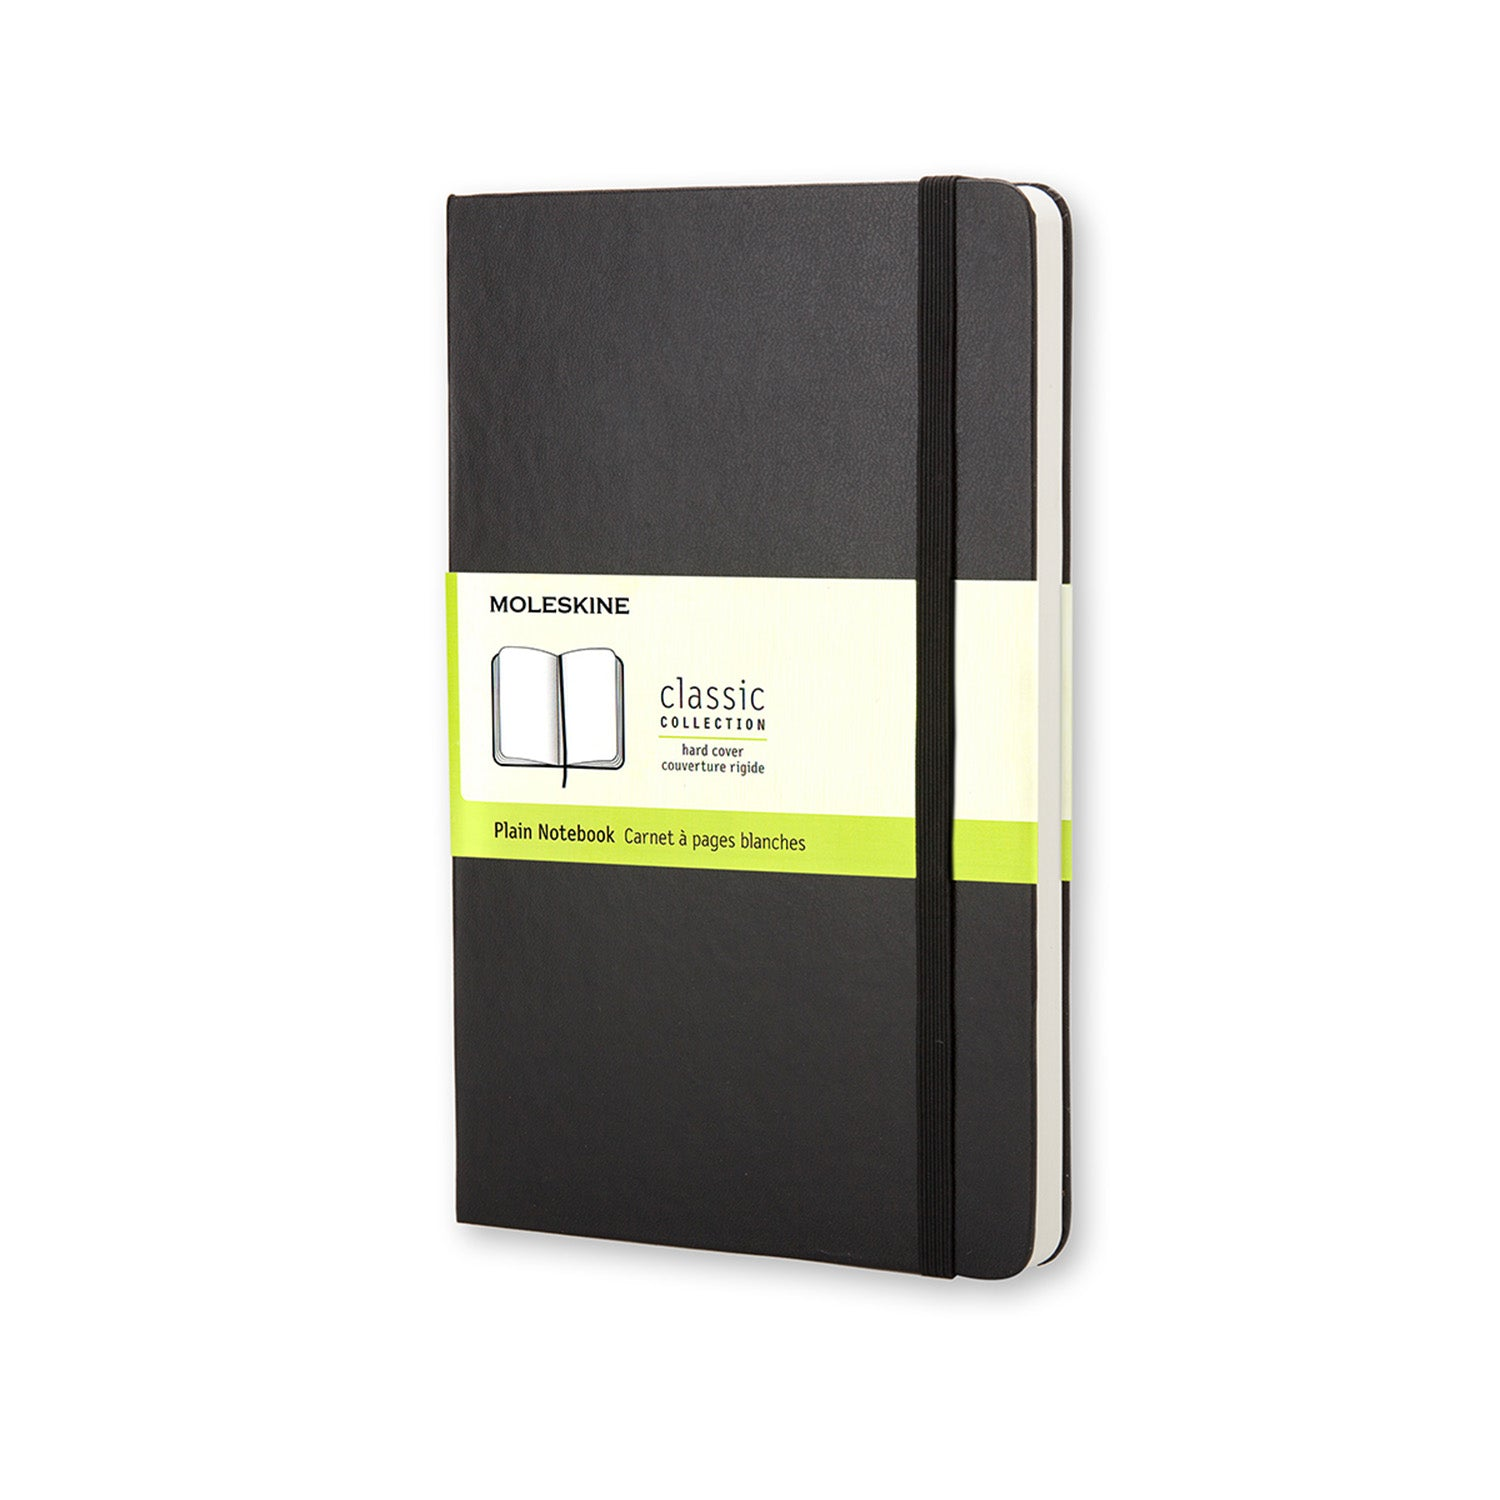 Moleskine Classic Notebook Pocket Hard Cover, Book, Chronicle Books - LIESAS